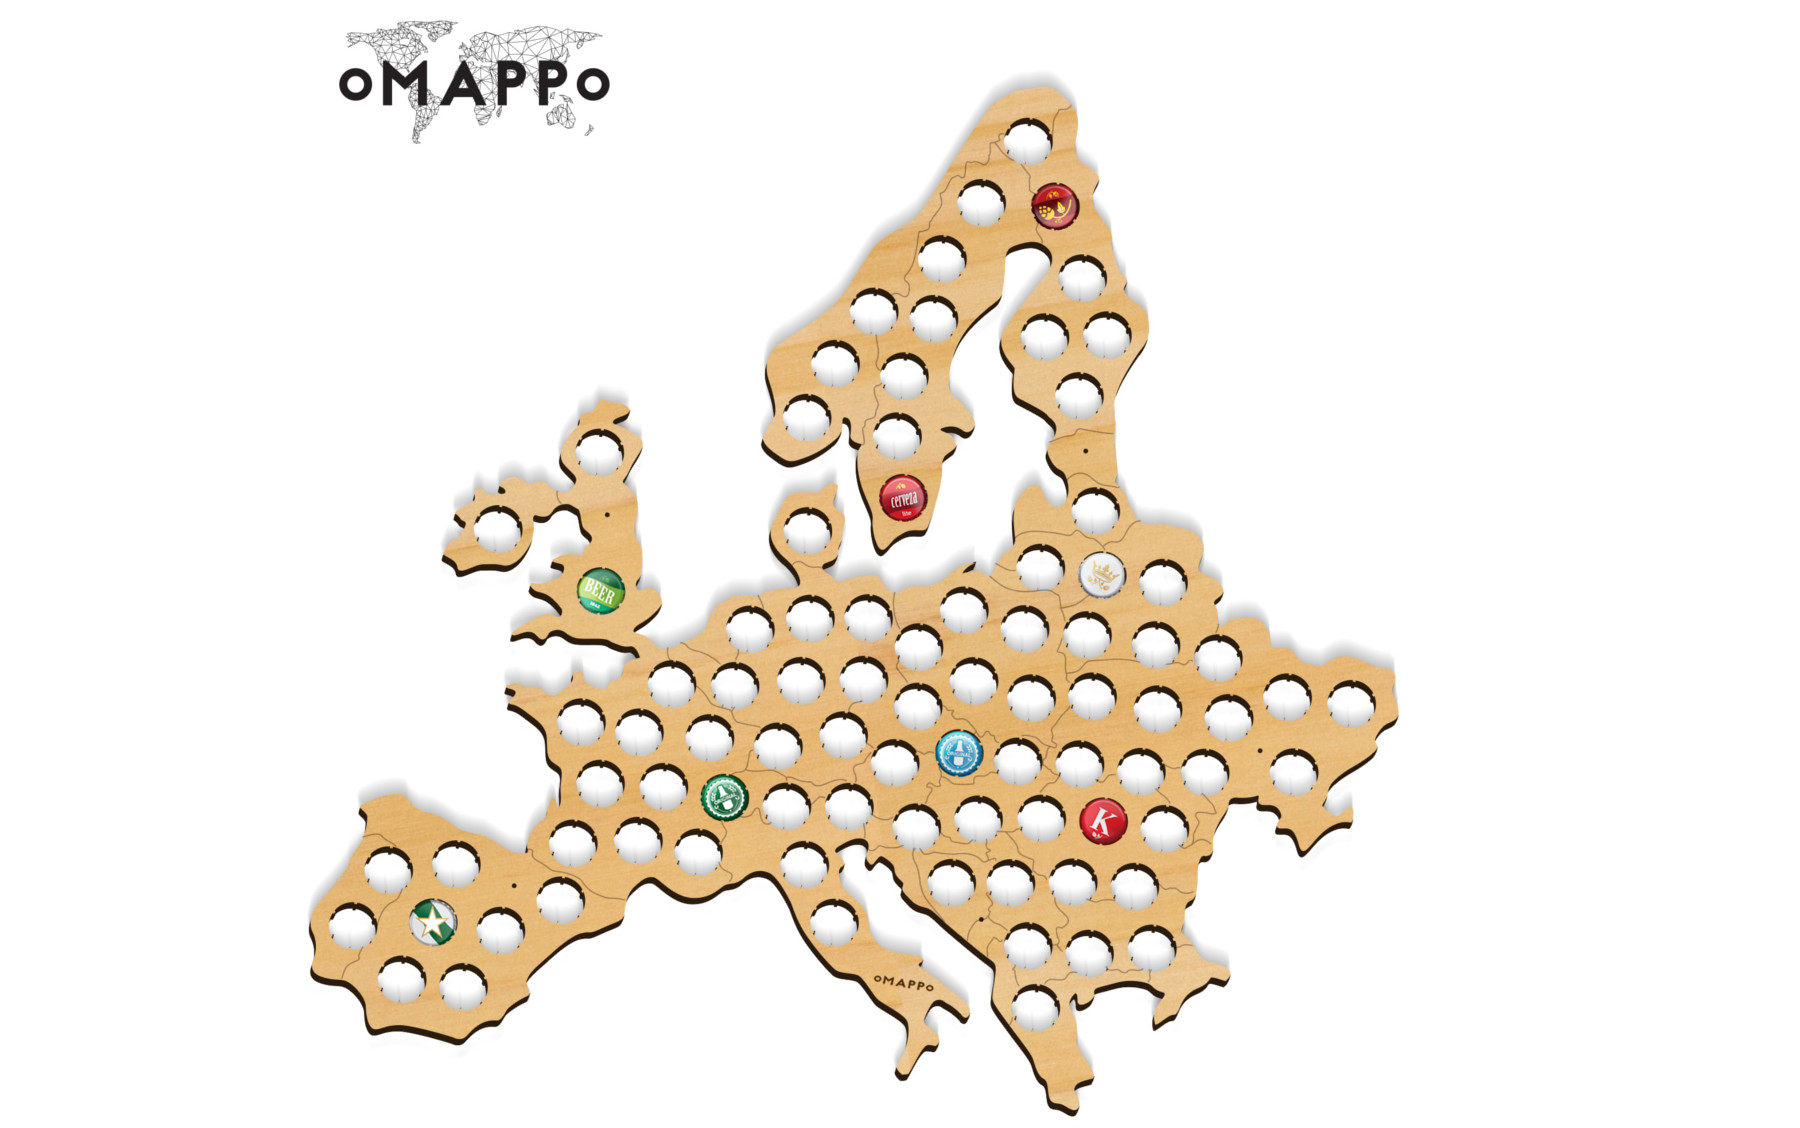 europe beer cap piwna mapa map kapsle www_3